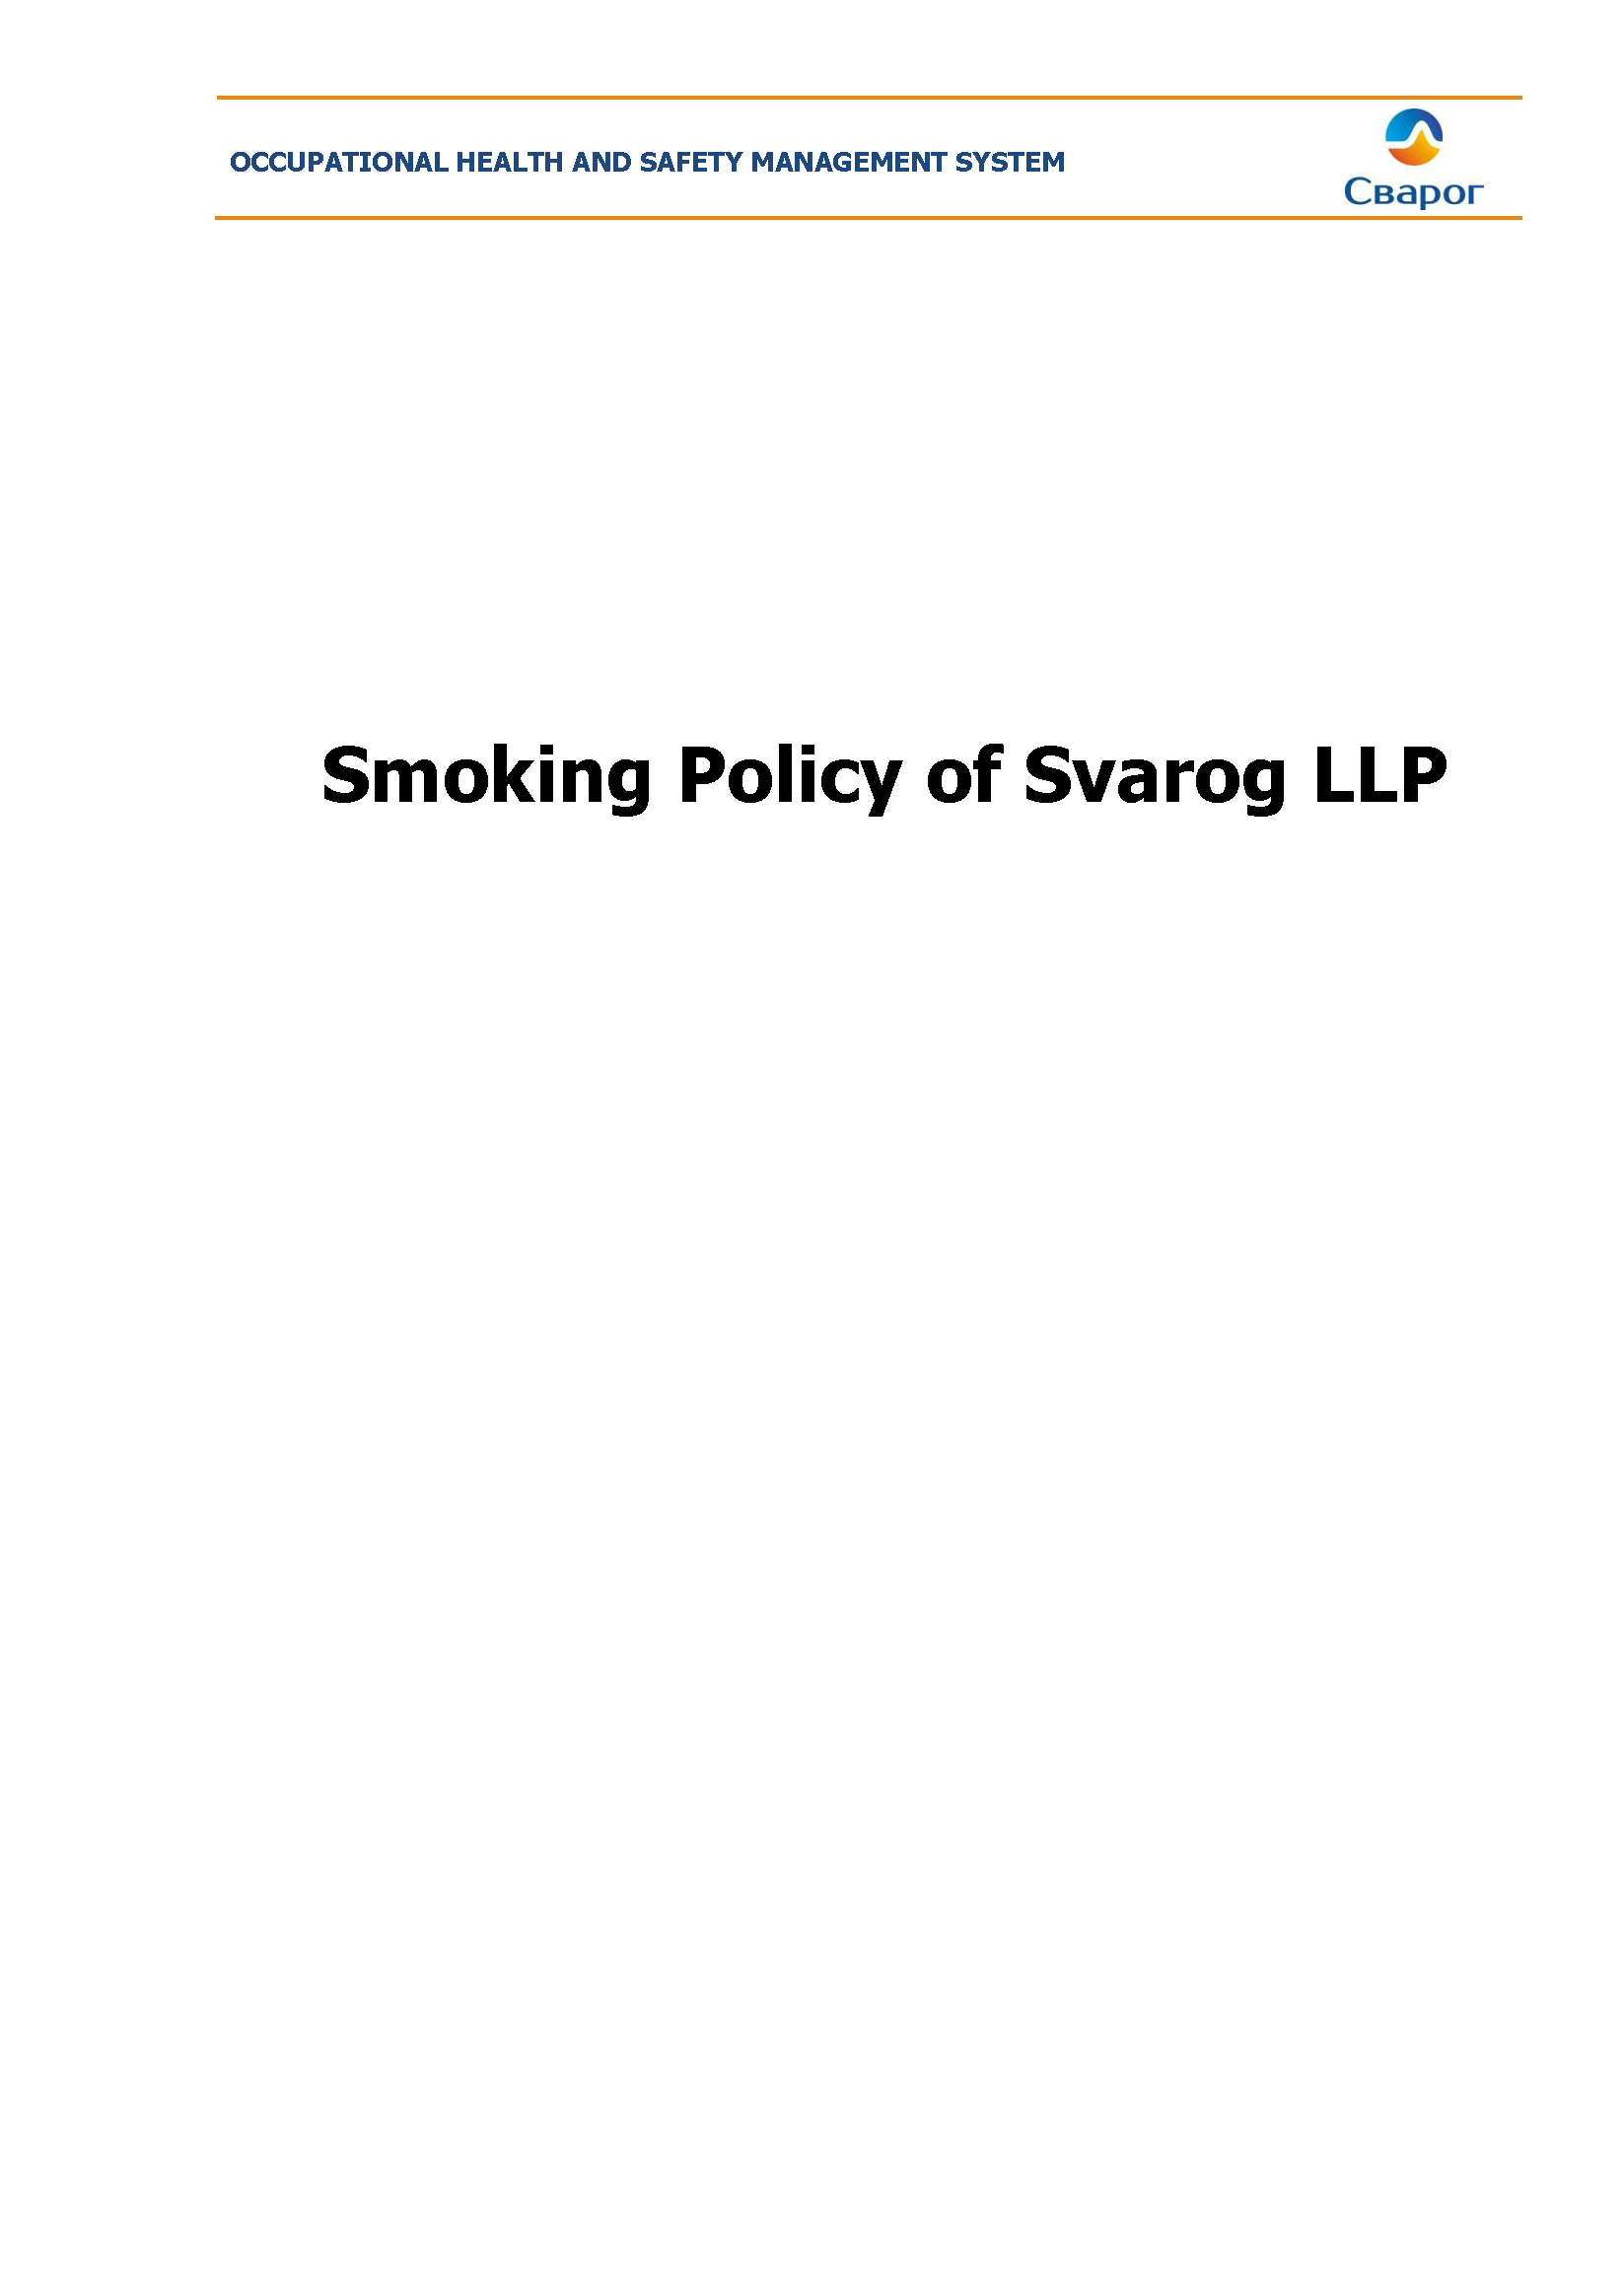 Smoking Policy of Svarog LLP